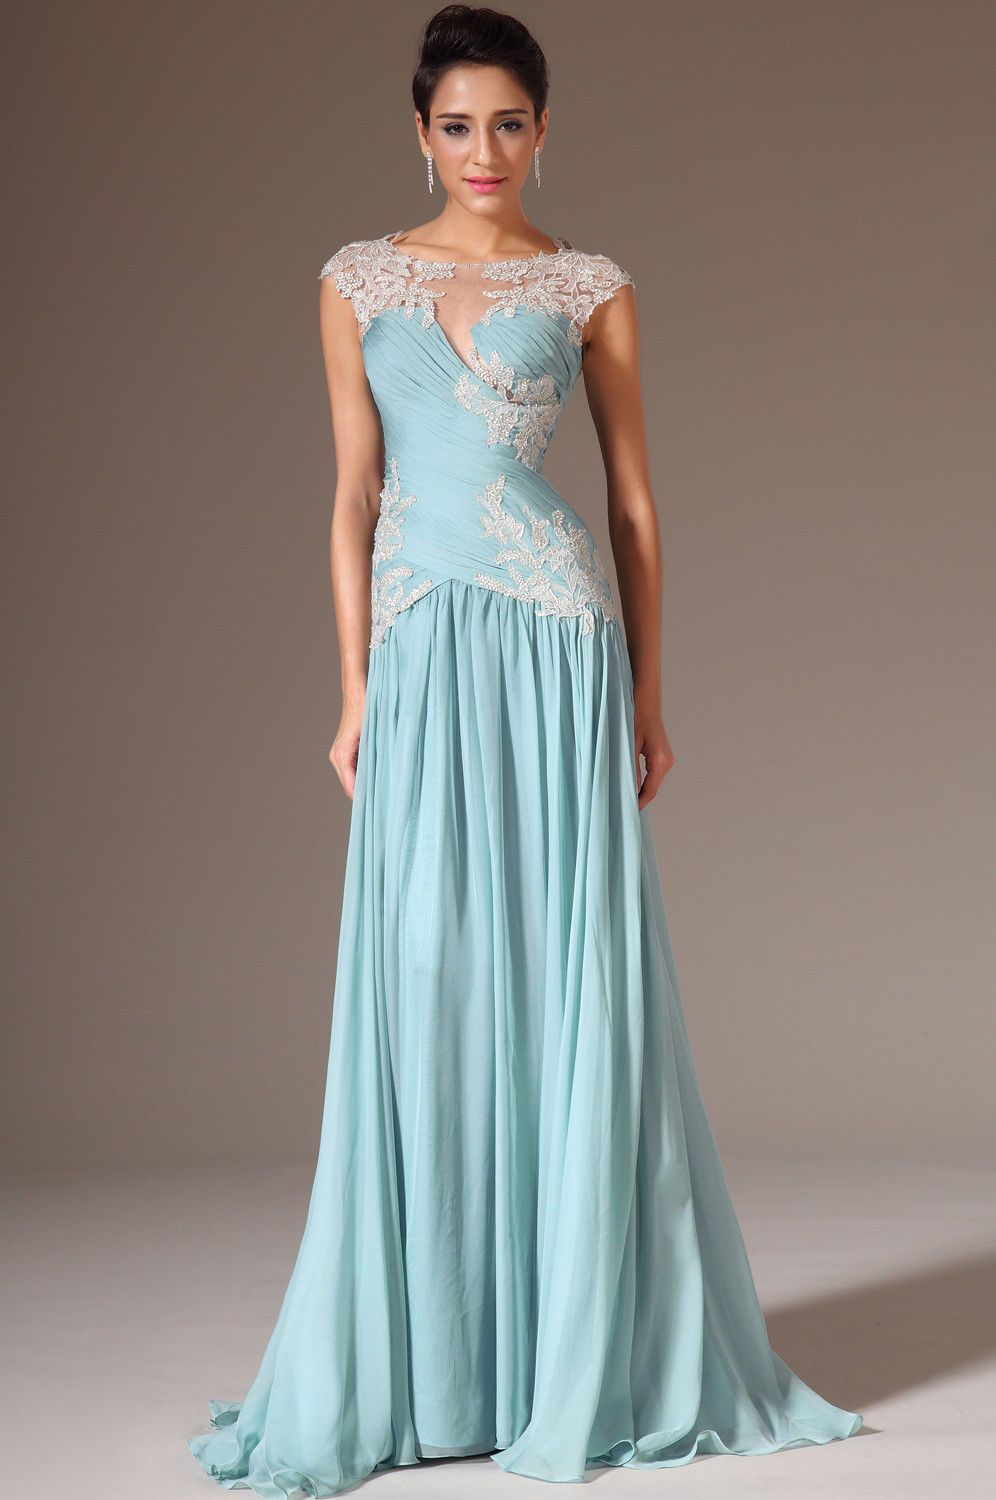 Elegant Long Formal Party Prom Gown Pageant Dress Celebrity ...